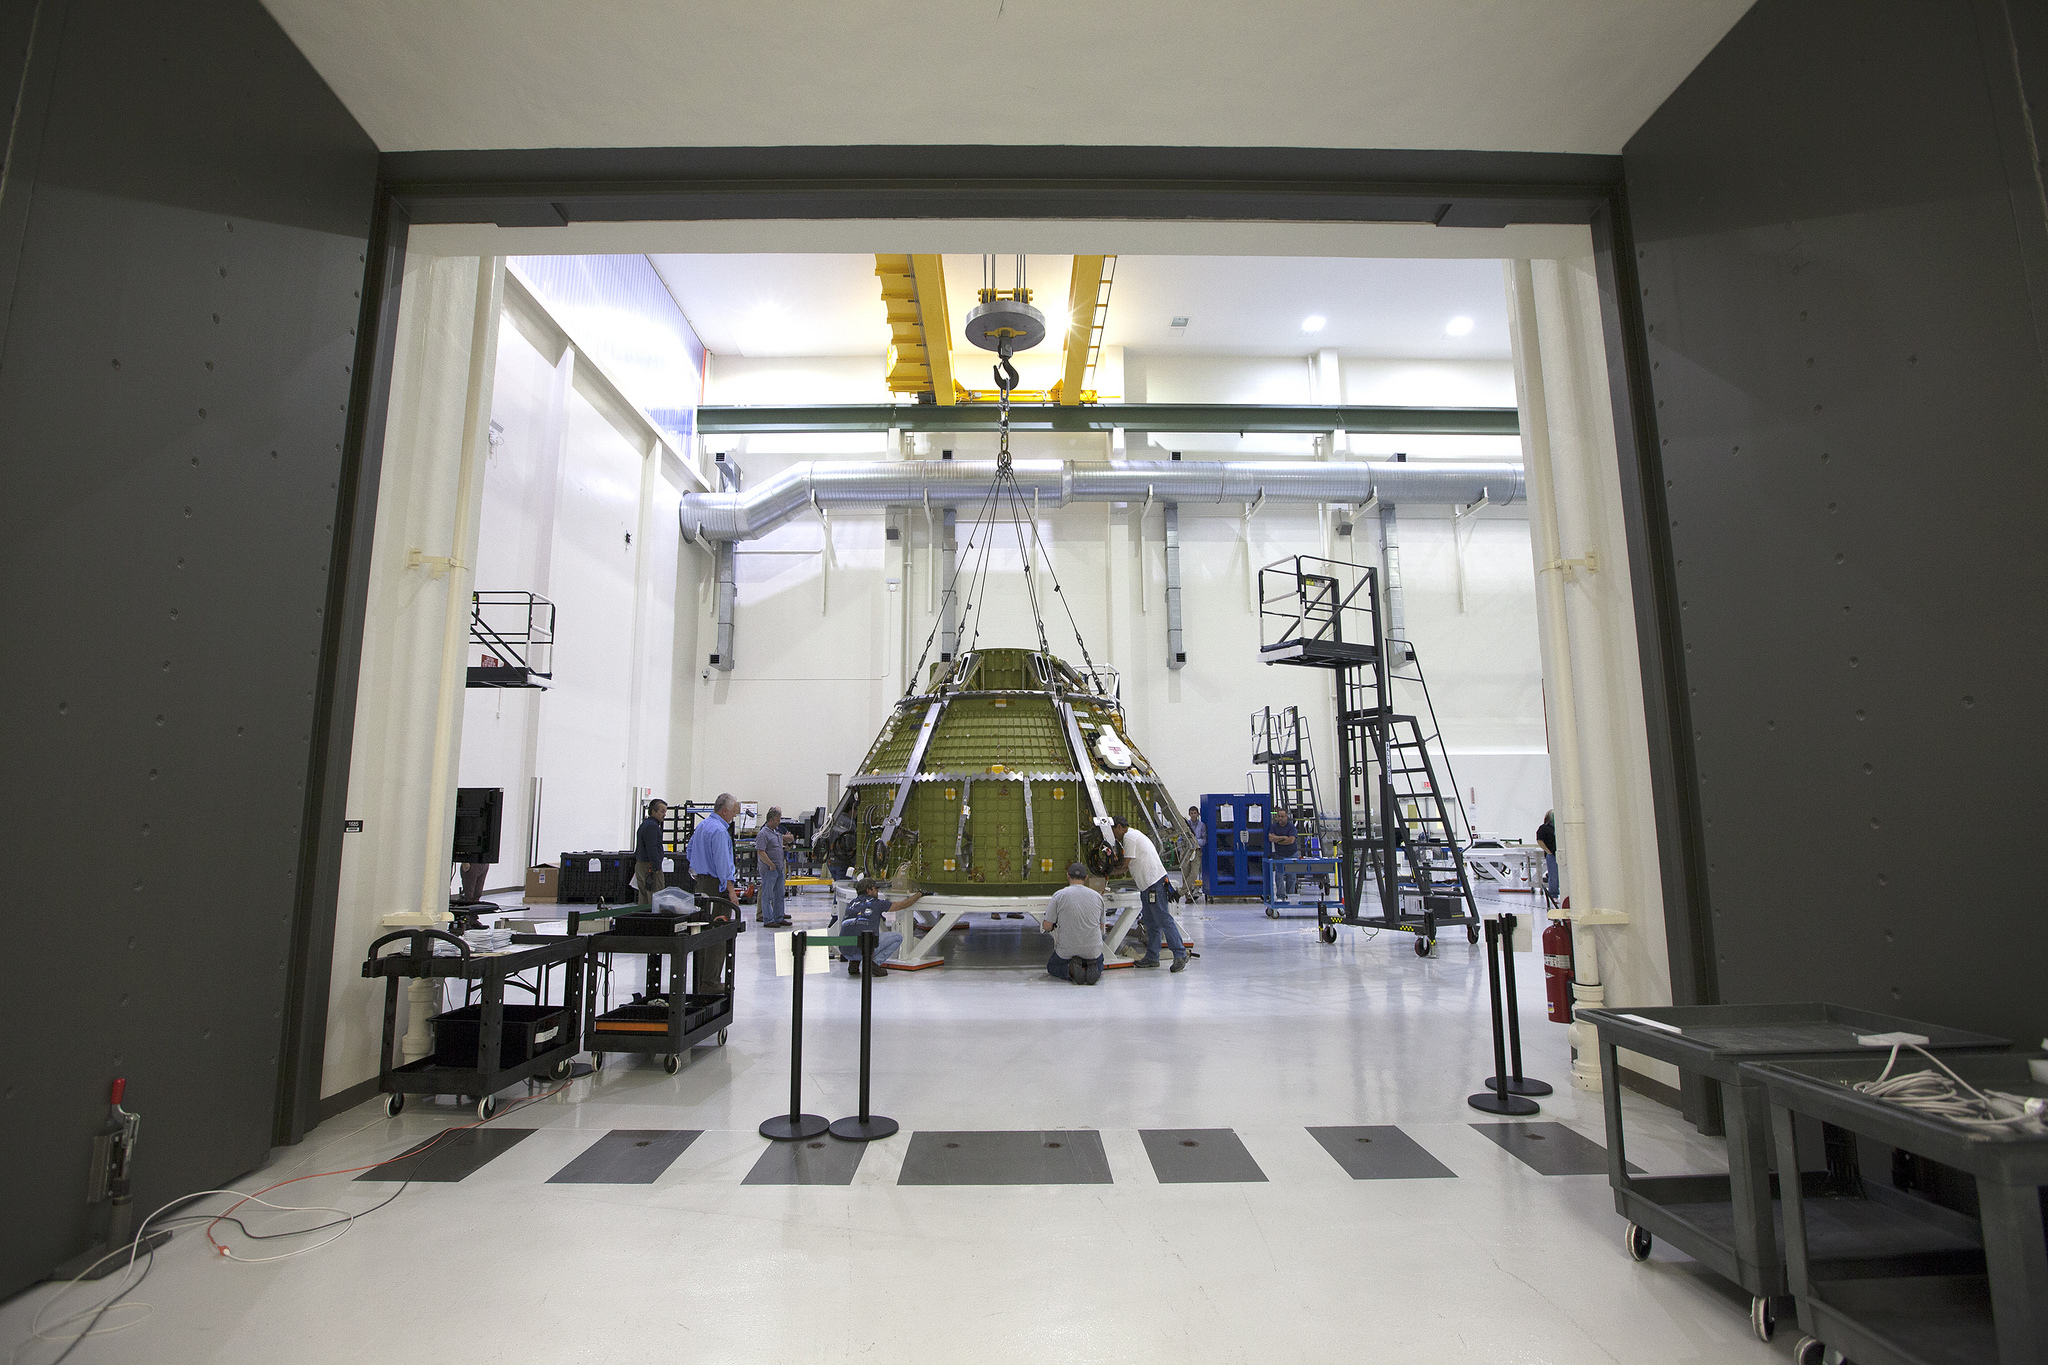 Lockheed Martin Engineers And Technicians Prepare The Orion Pressure Vessel  For A Series Of Tests Inside